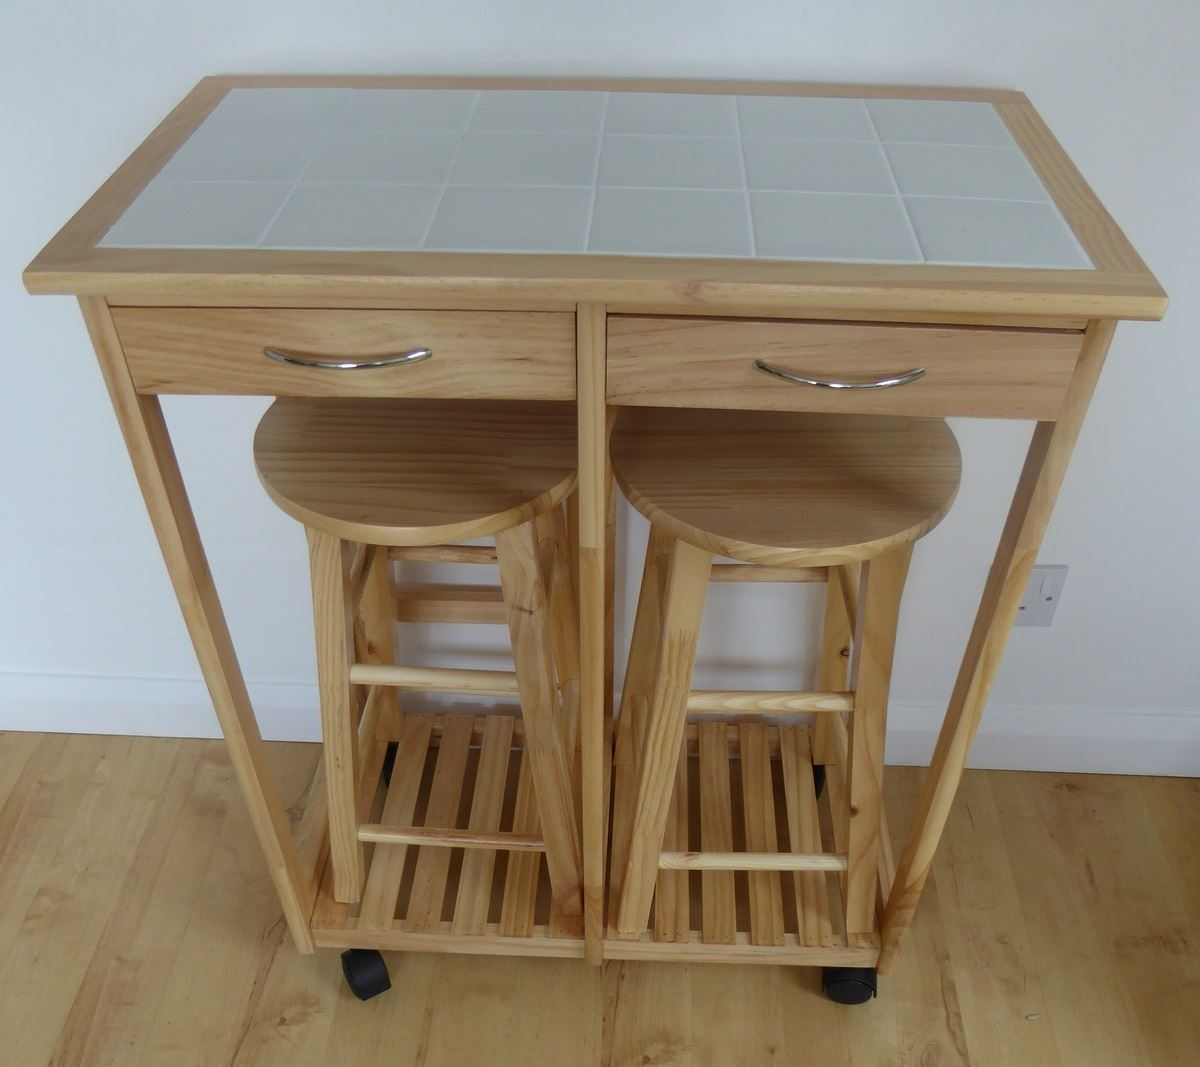 1 Seater 2 Seater Breakfast Bar Set Folding Table Stools